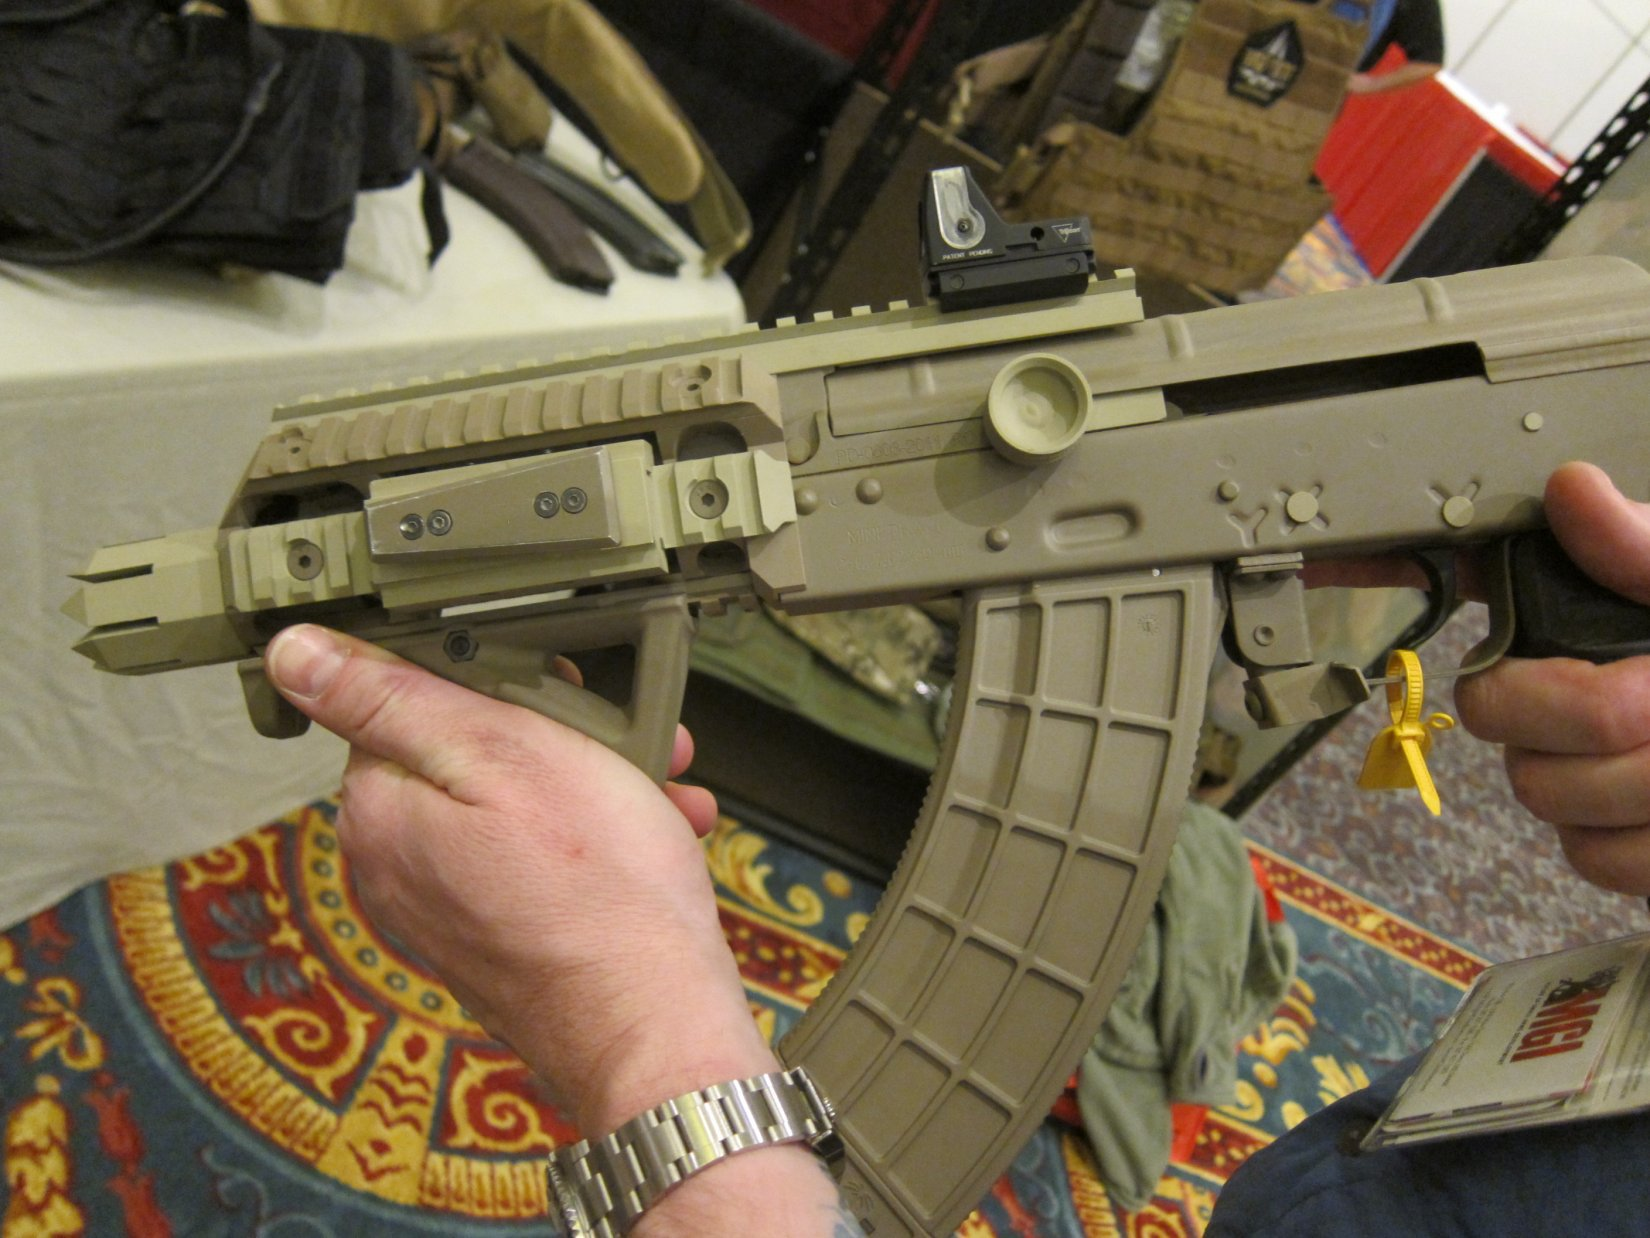 Bad Company Tactical Rapid Retention System (BCT R2S) Holster System for Tactical SBR (Short Barreled Rifle)/Sub-Carbine-Type Personal Defense Weapons (PDW) and Pistols (Video!)